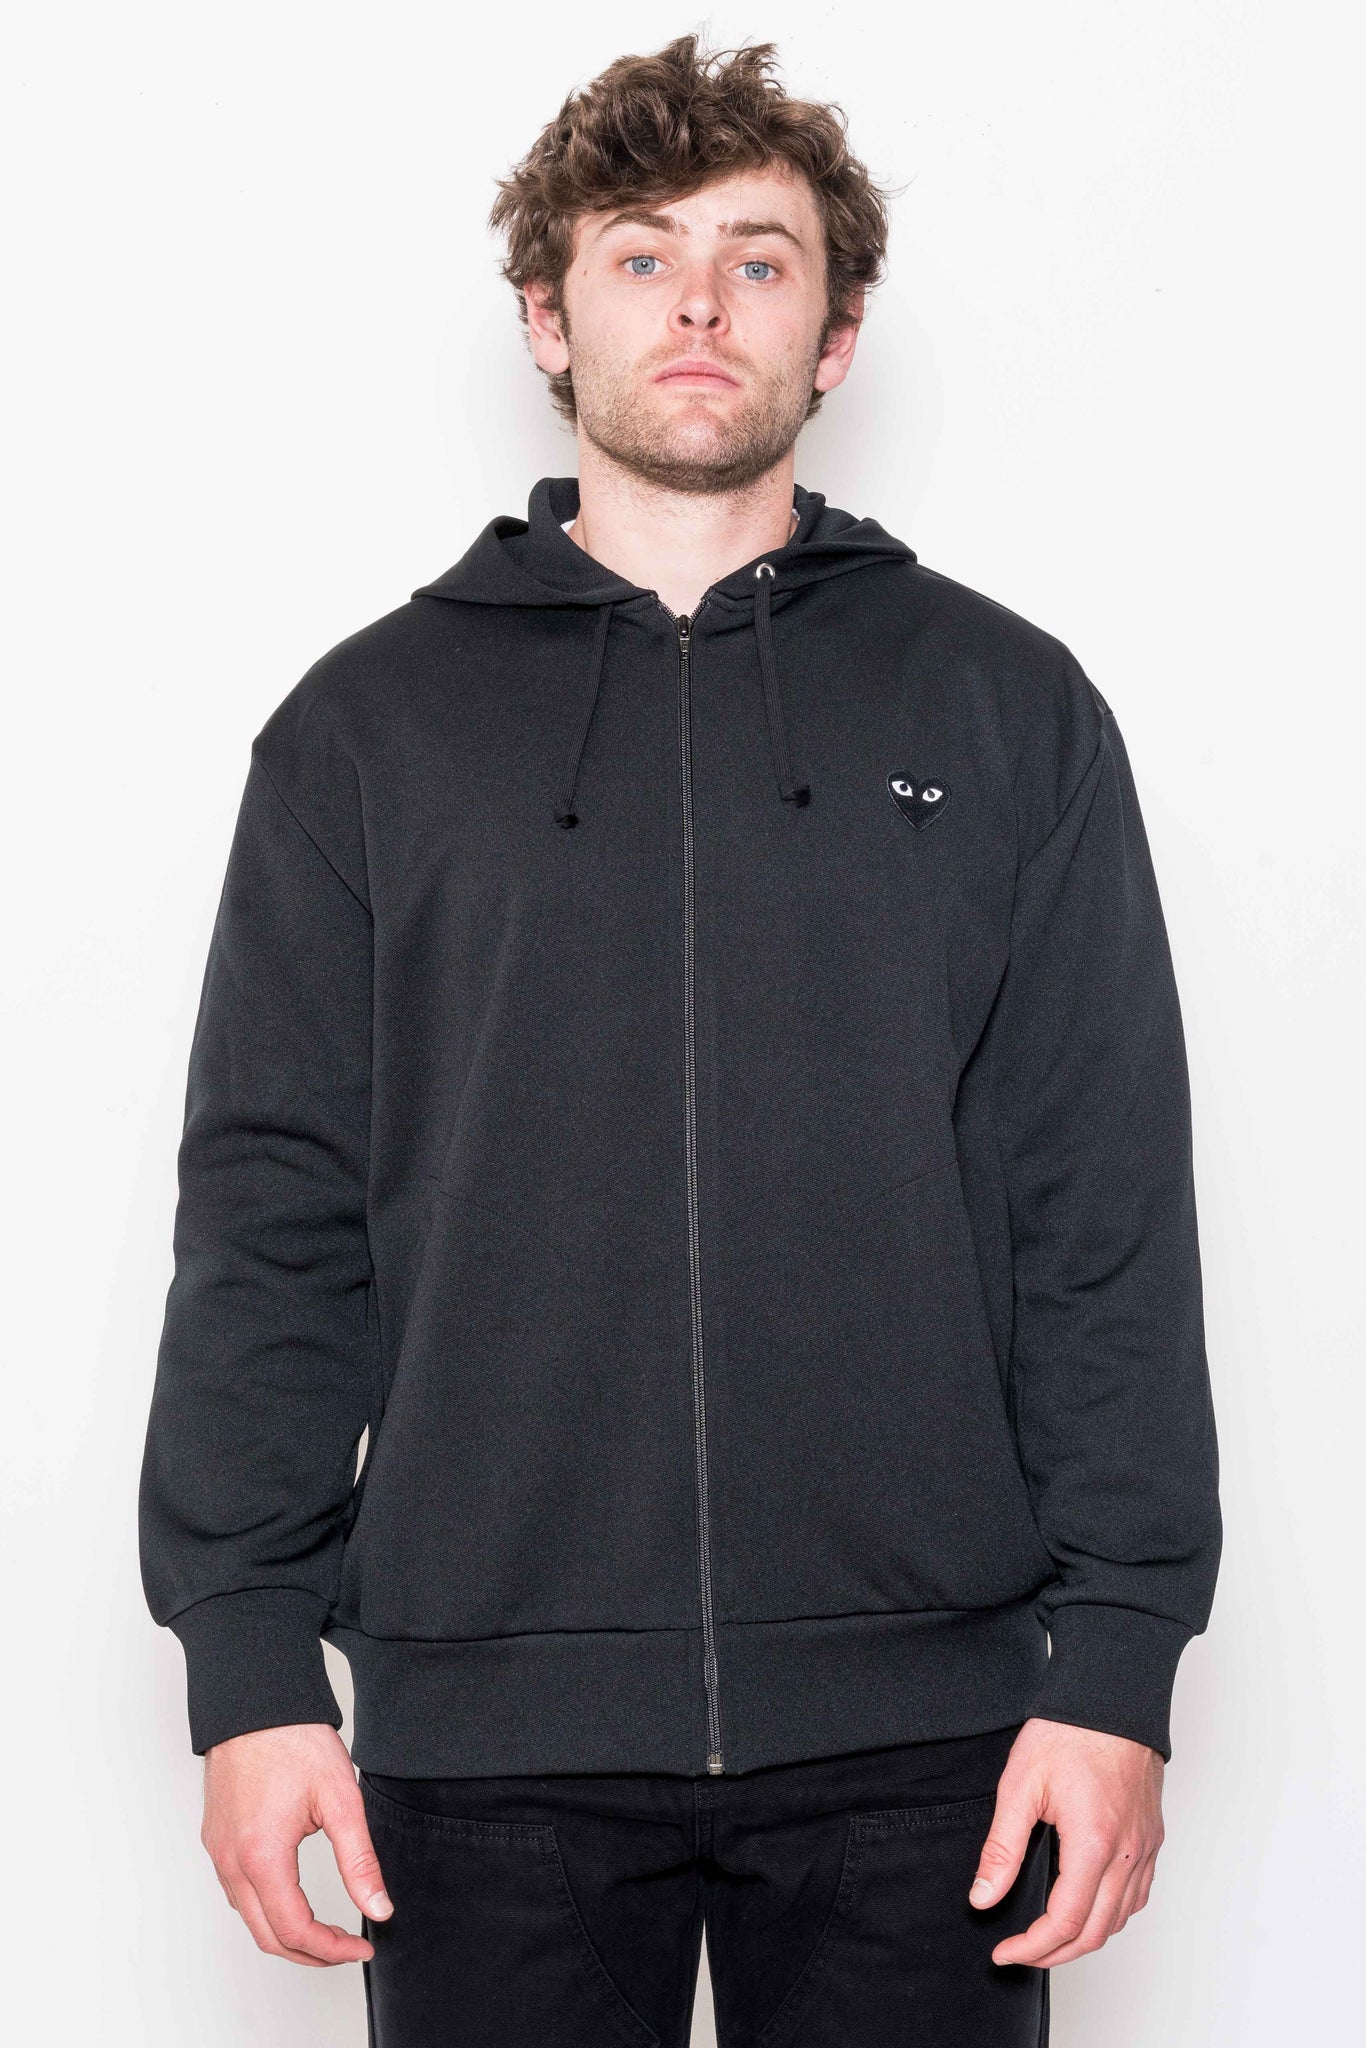 Zip-Up Hoodie T254 in Black